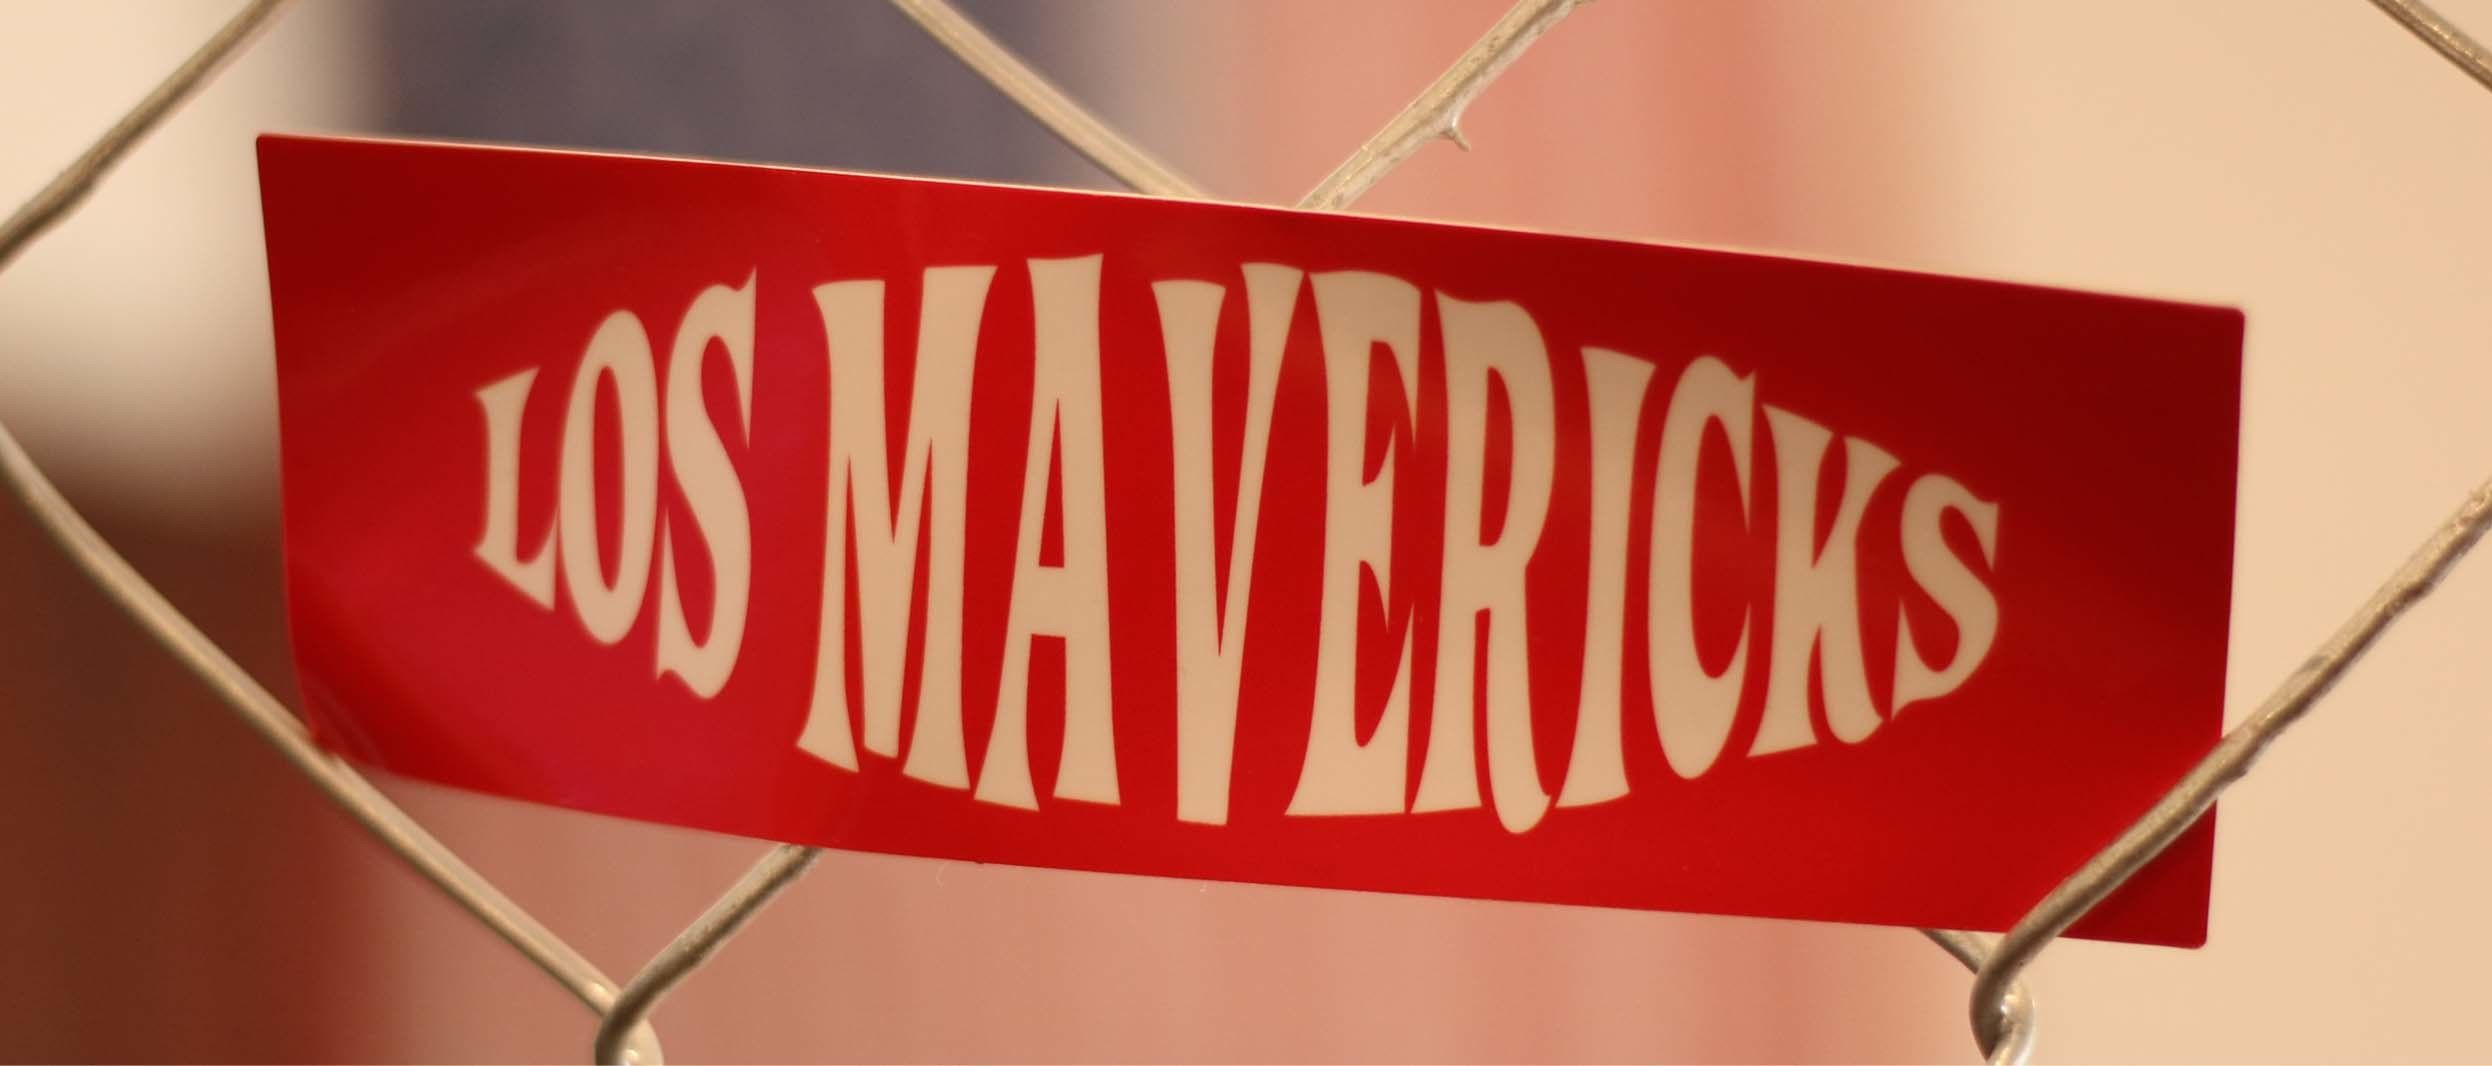 Los Mavericks